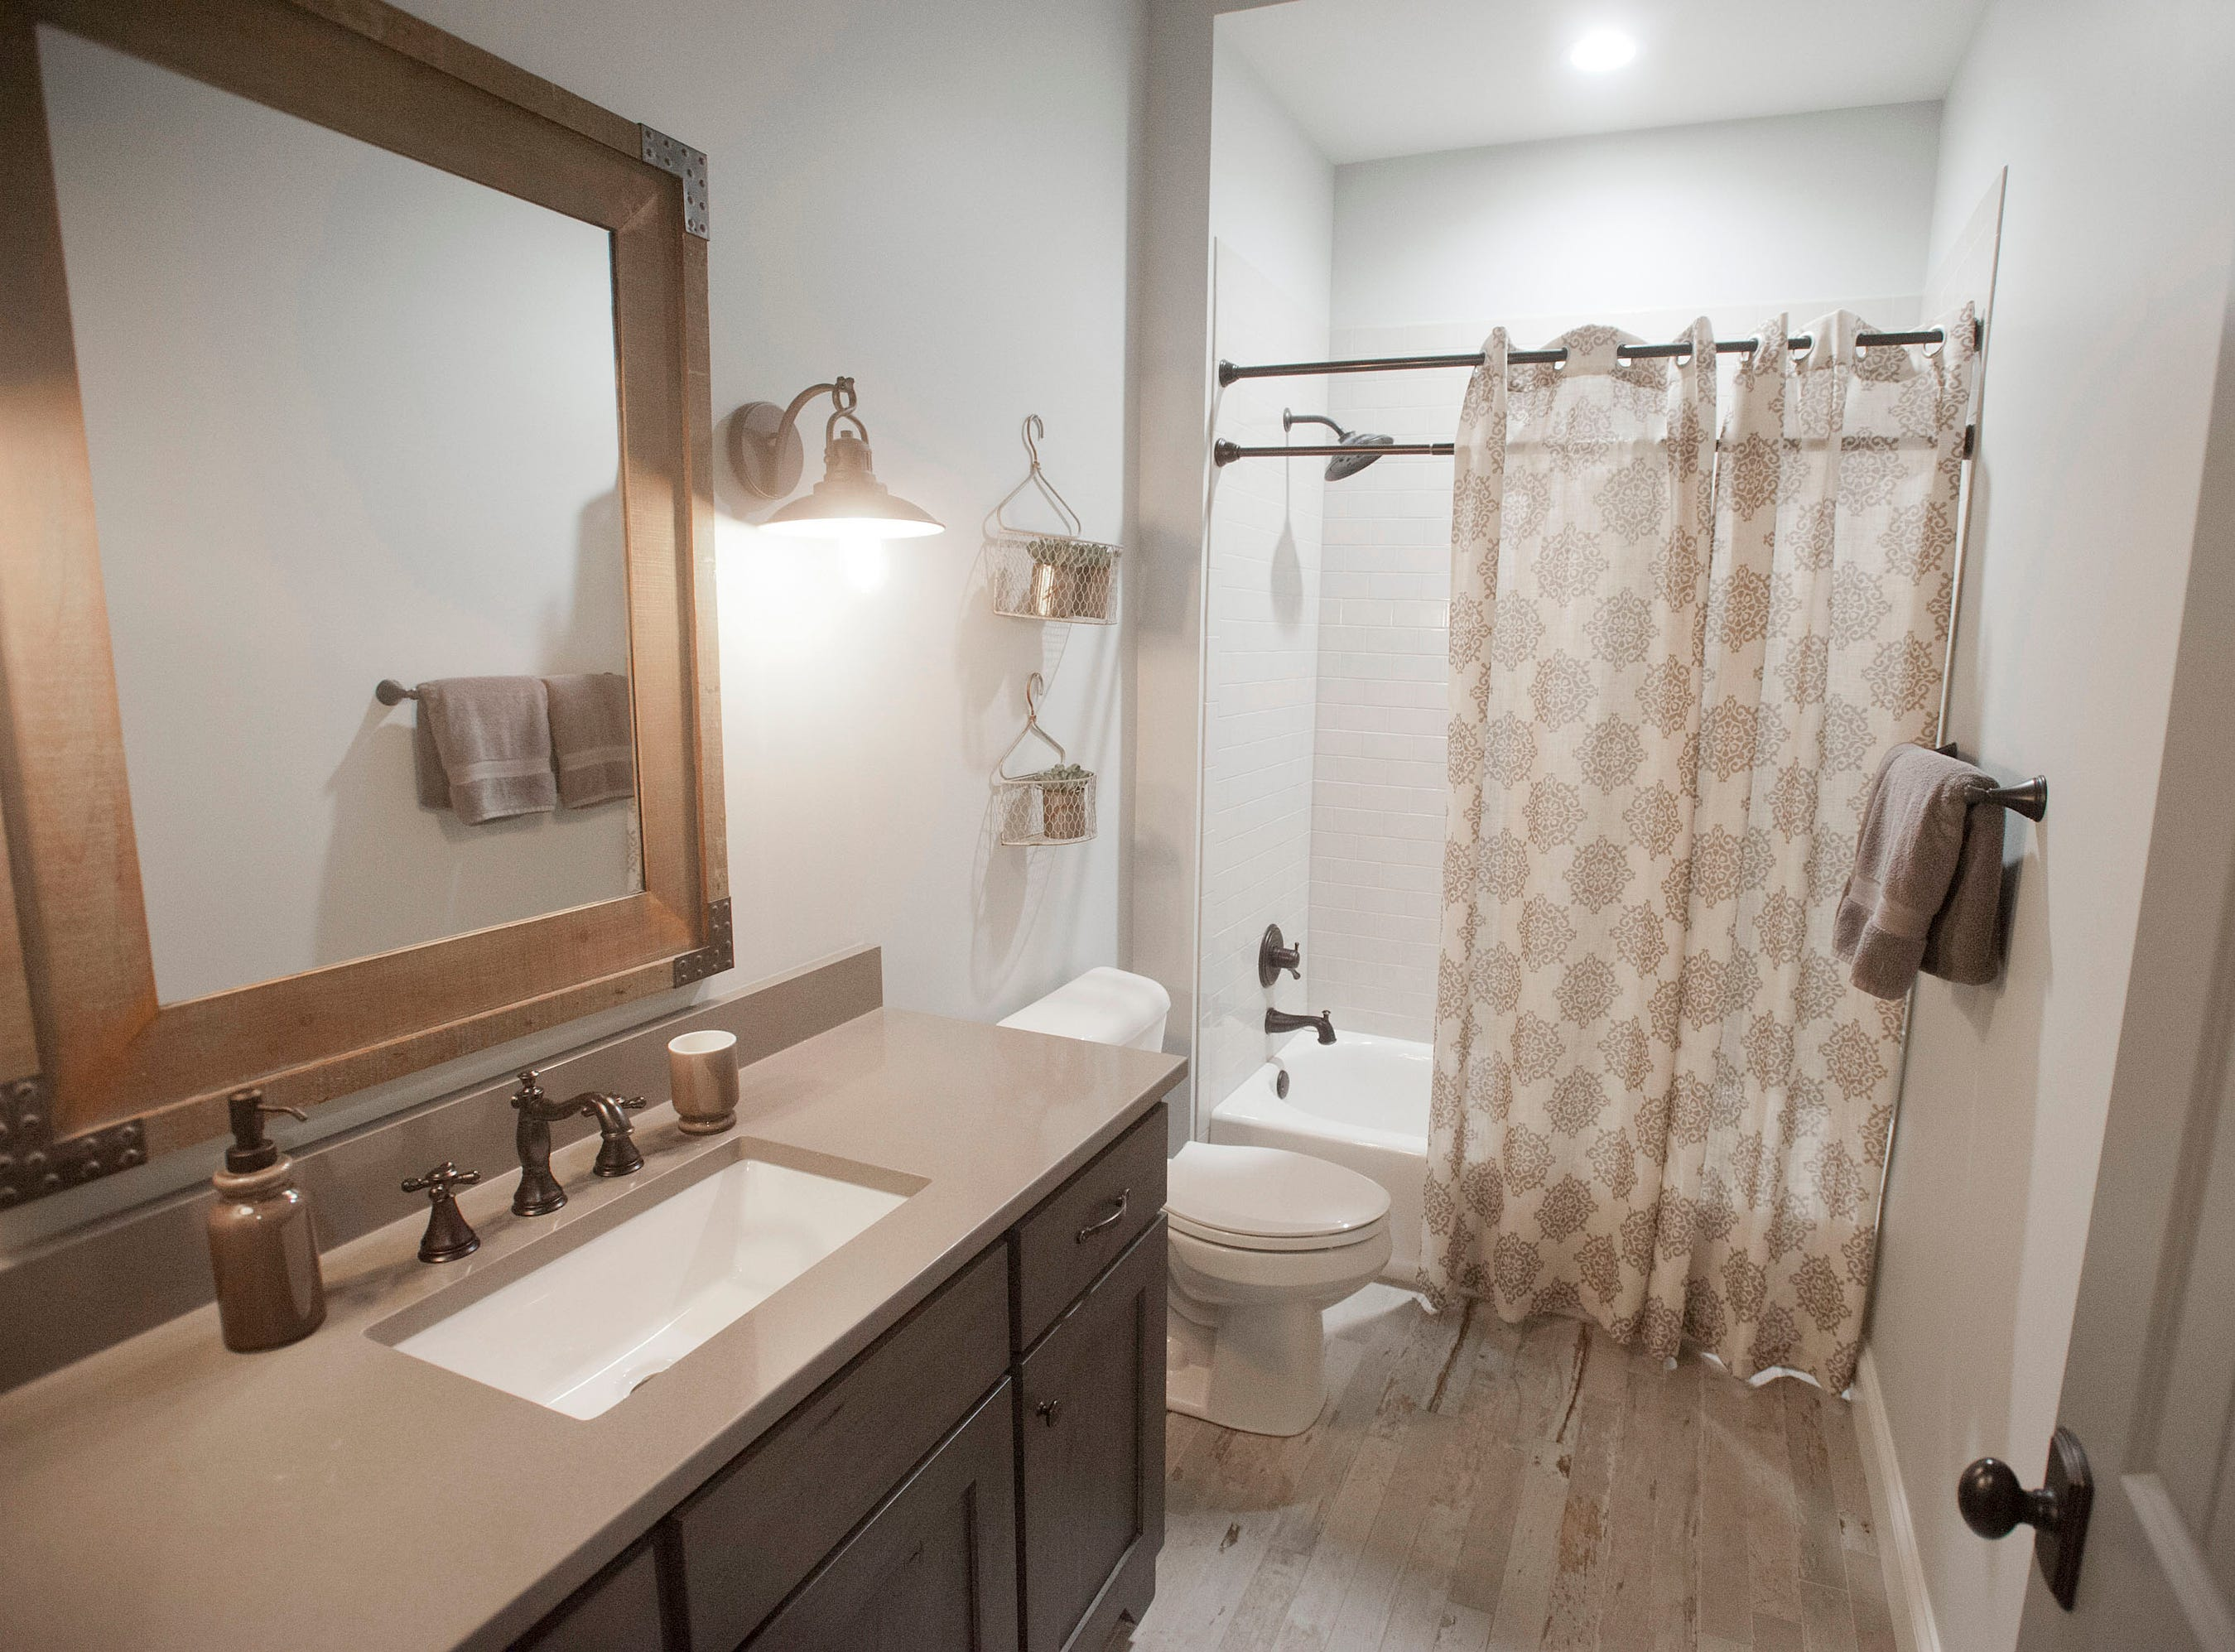 The family room bathroom of the Hannah home in Norton Commons.01 March 2019